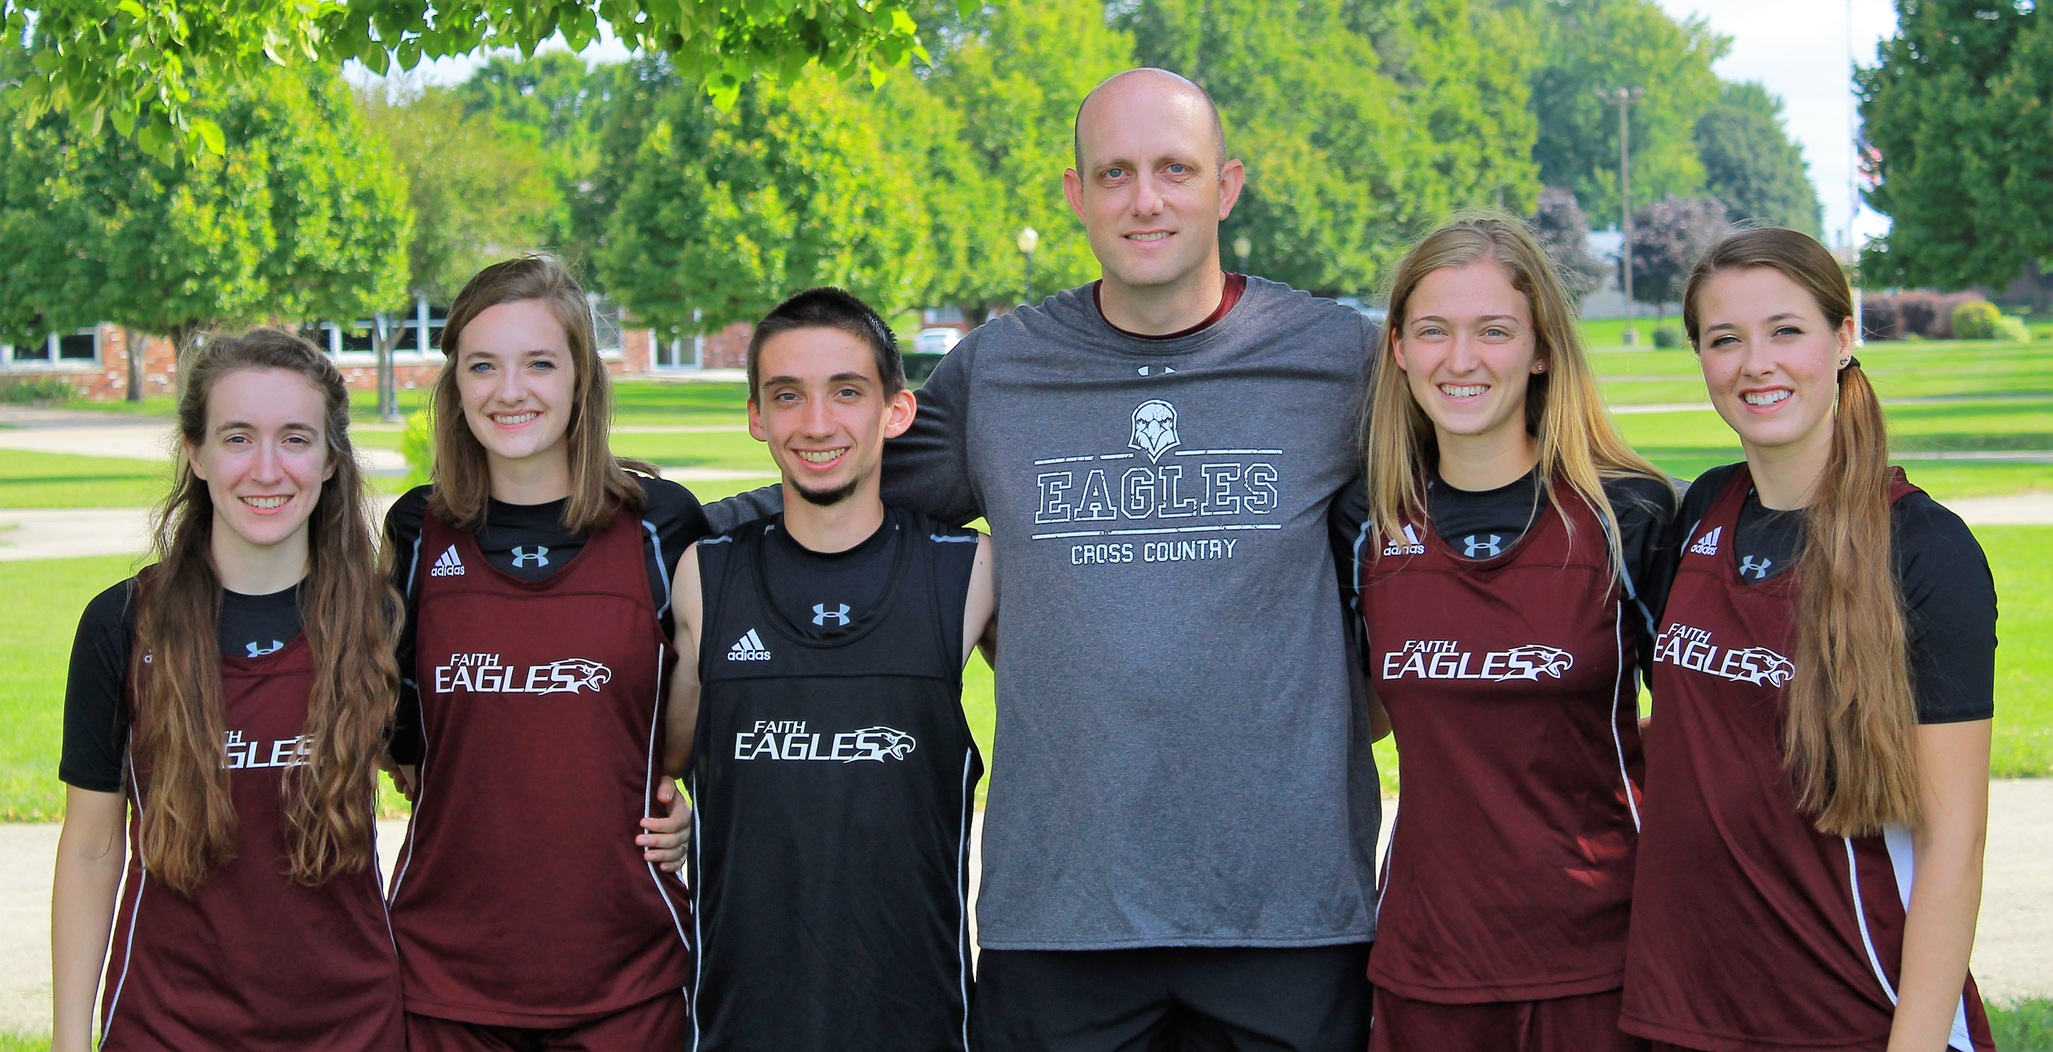 Cross Country Season Begins Today for Faith Eagles